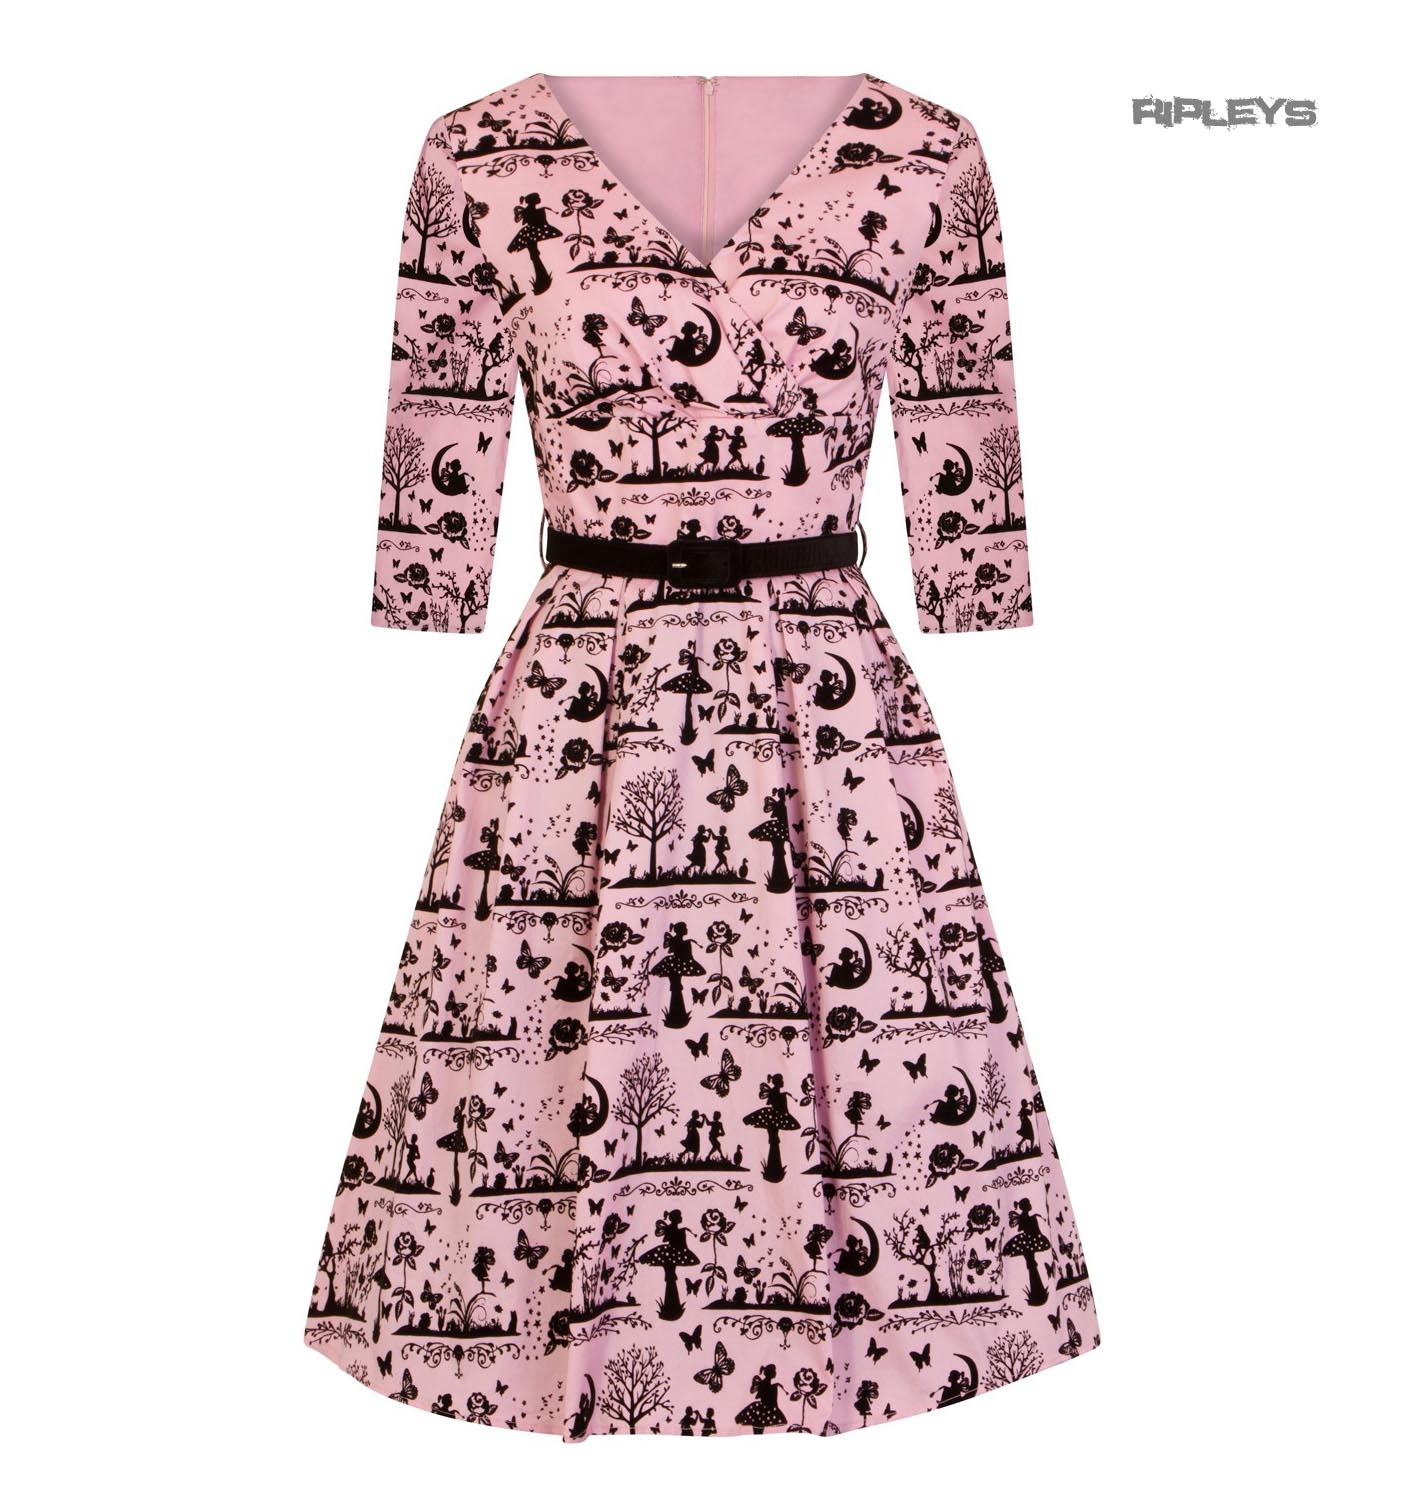 Hell-Bunny-40s-50s-Pin-Up-Dress-Fairy-Butterfly-ANDERSON-Black-Pink-All-Sizes thumbnail 2